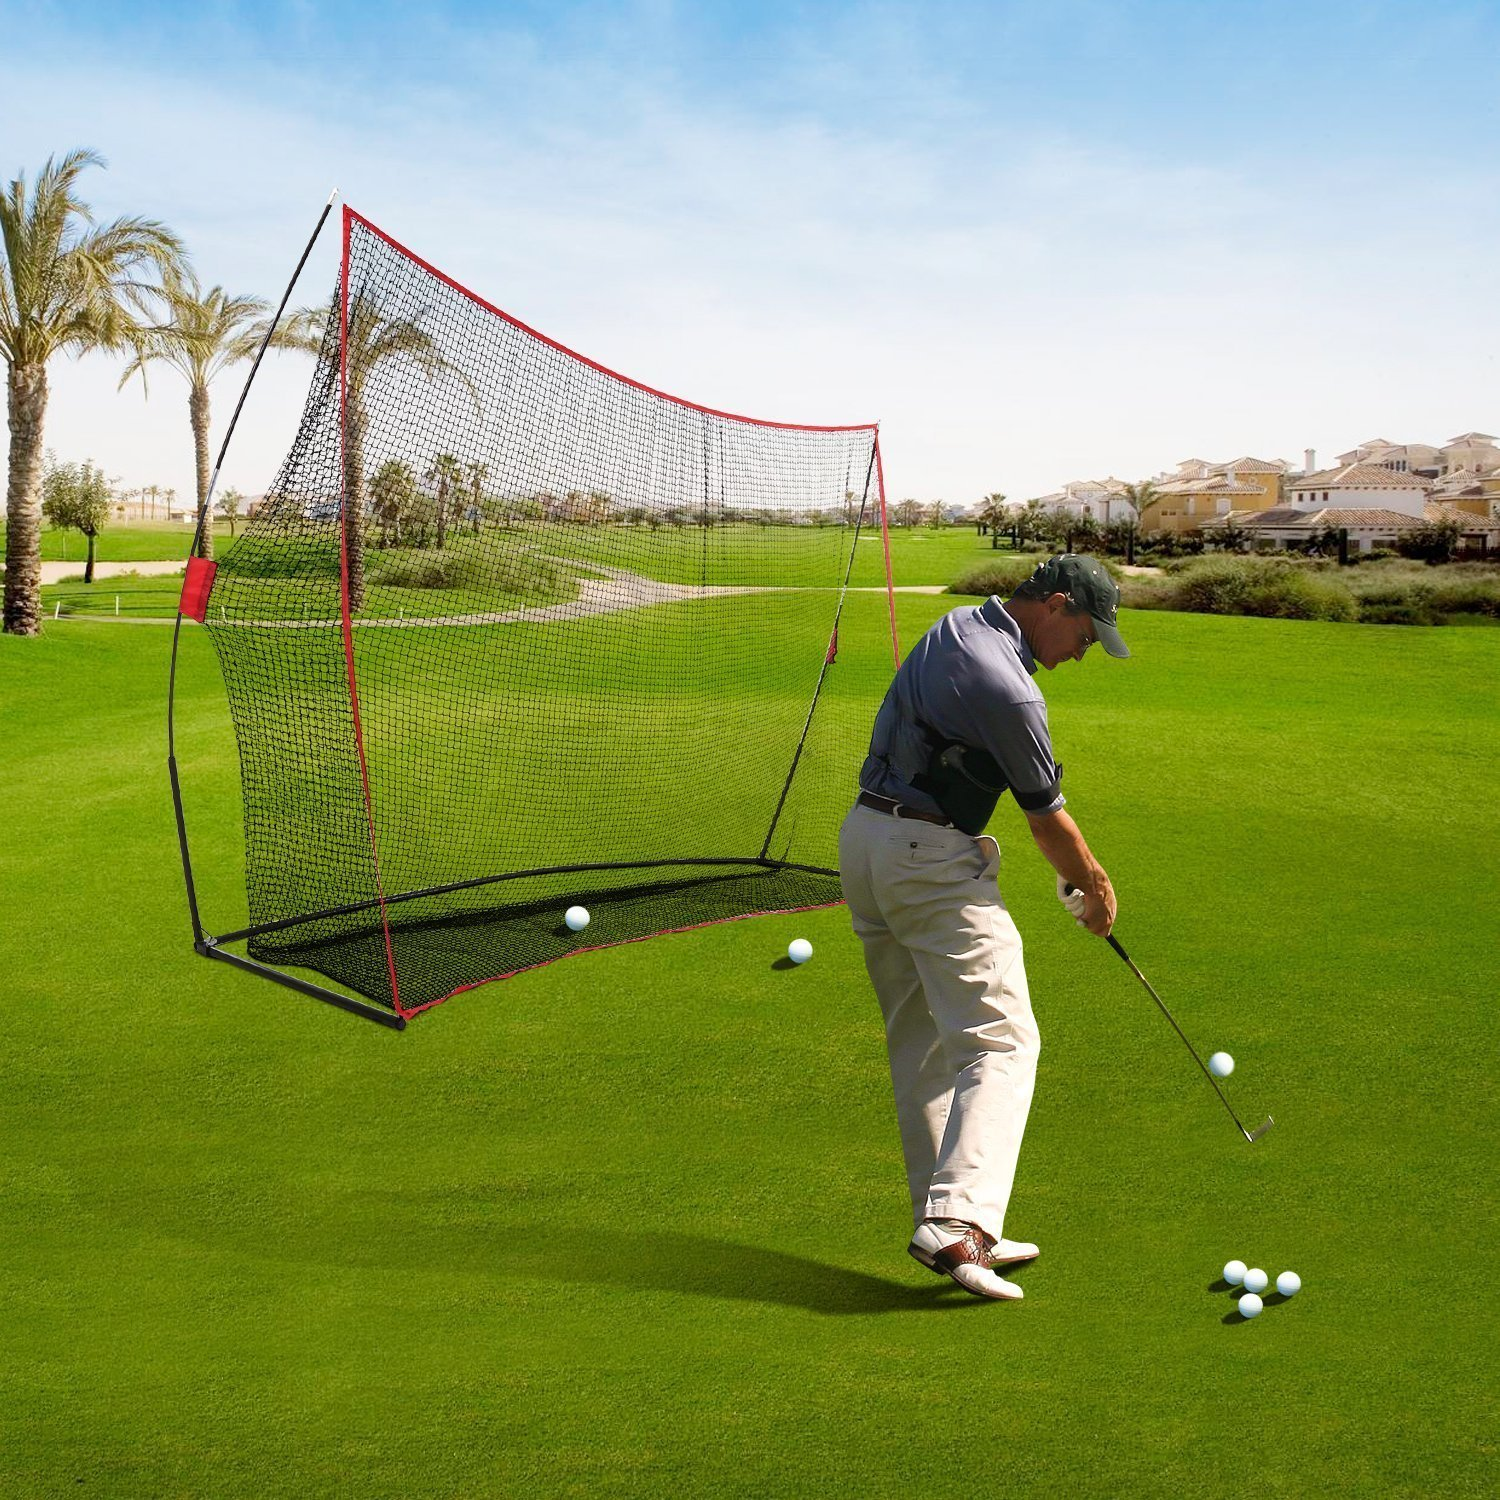 Garain Professional Portable Golf Hitting Net Driving Net with Bow Frame and Carrying Bag (10 ft x 7ft x 3ft) [ US STOCK]